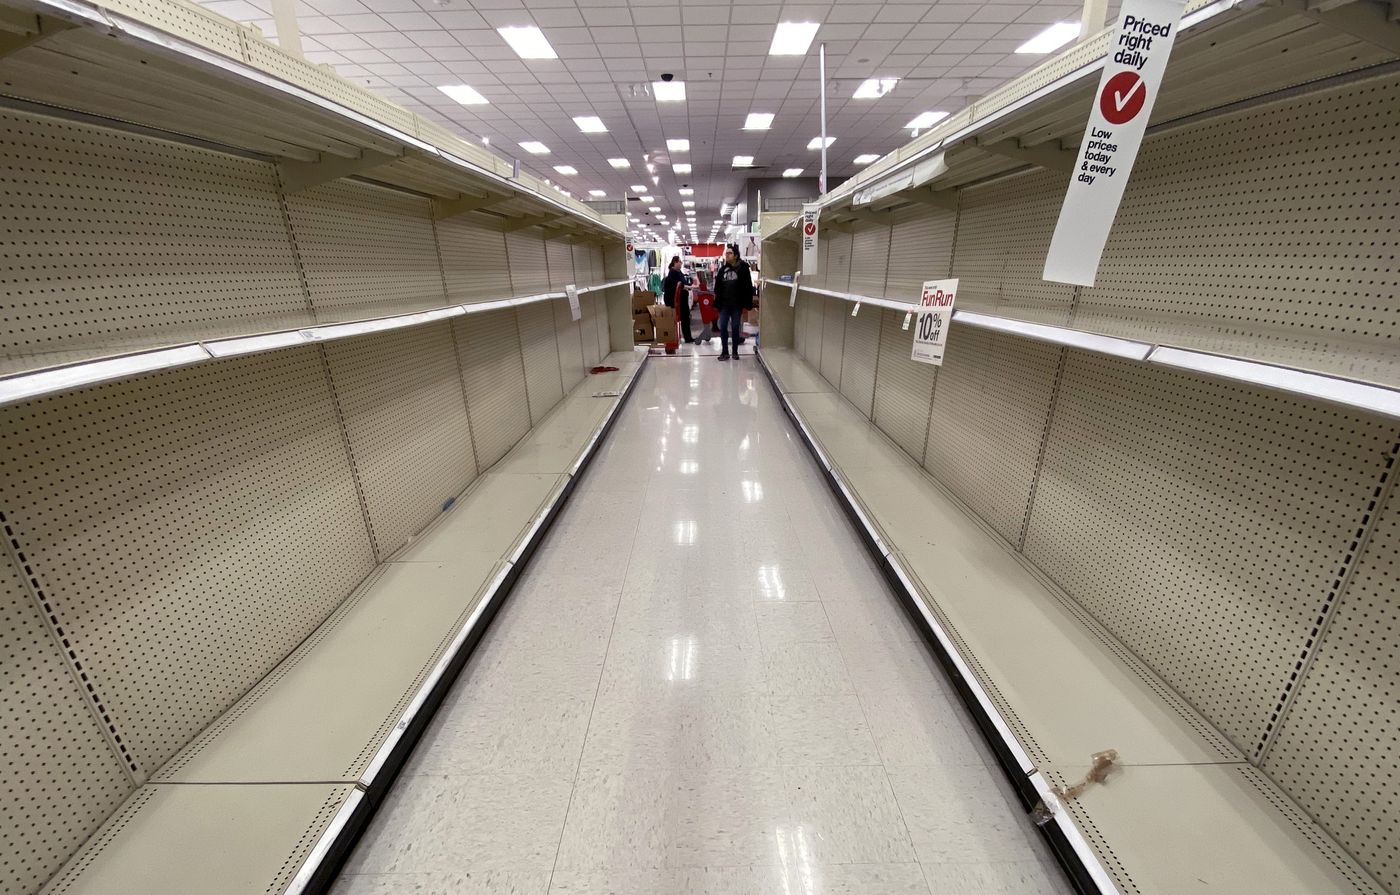 Shelves normally stocked with hand wipes, hand sanitizer and toilet paper sit empty at a Target store in Arlington, Virginia, on March 13, 2020.